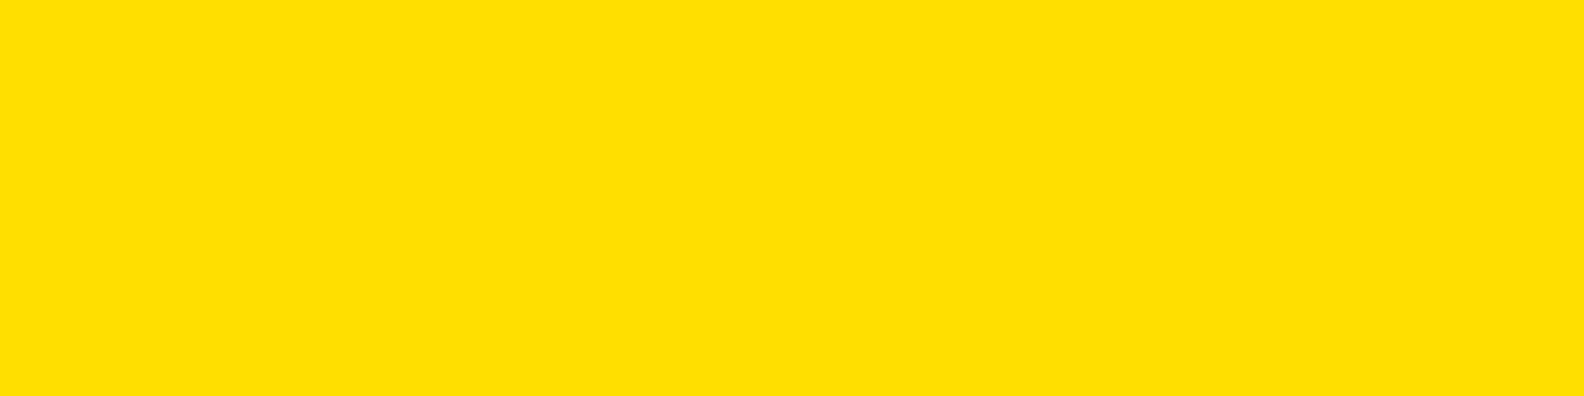 1584x396 Yellow Pantone Solid Color Background